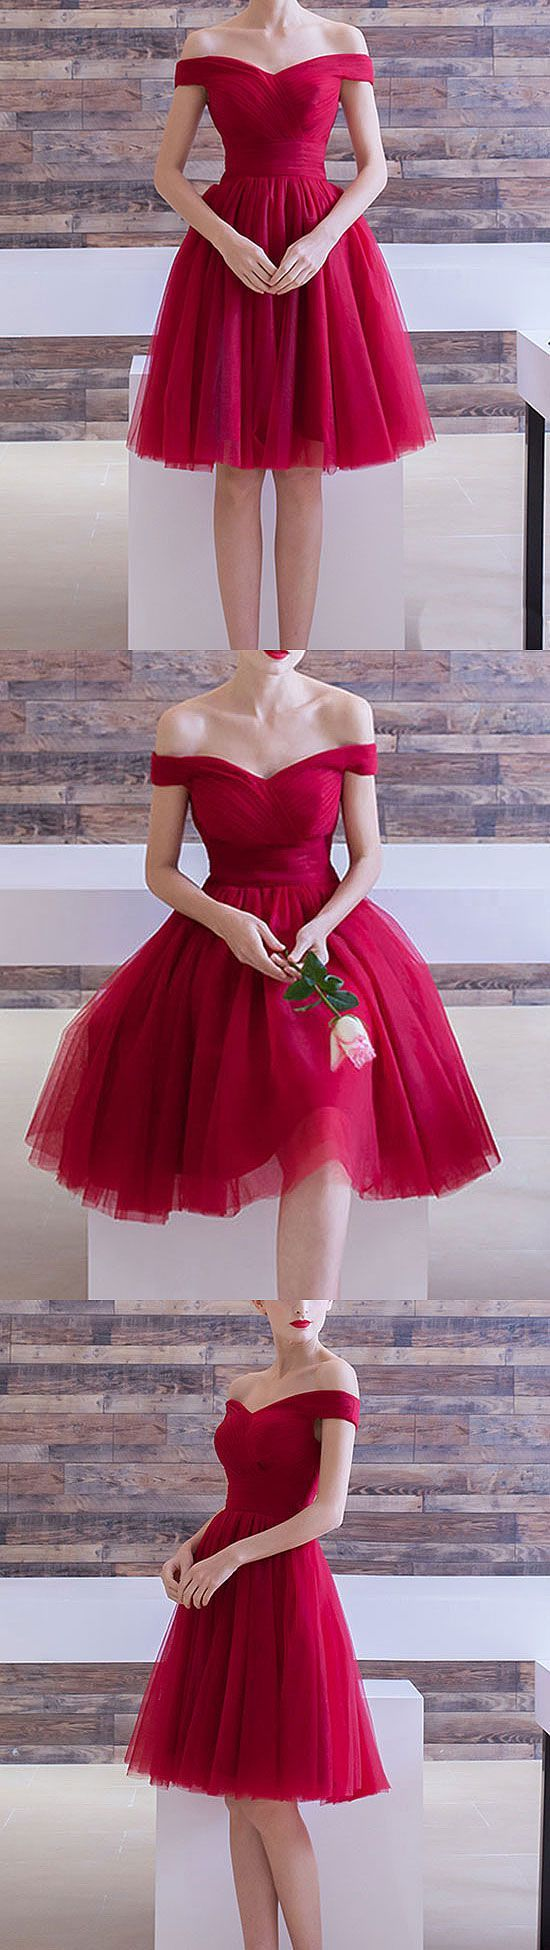 15 amazing red Christmas dress outfits - red dresses